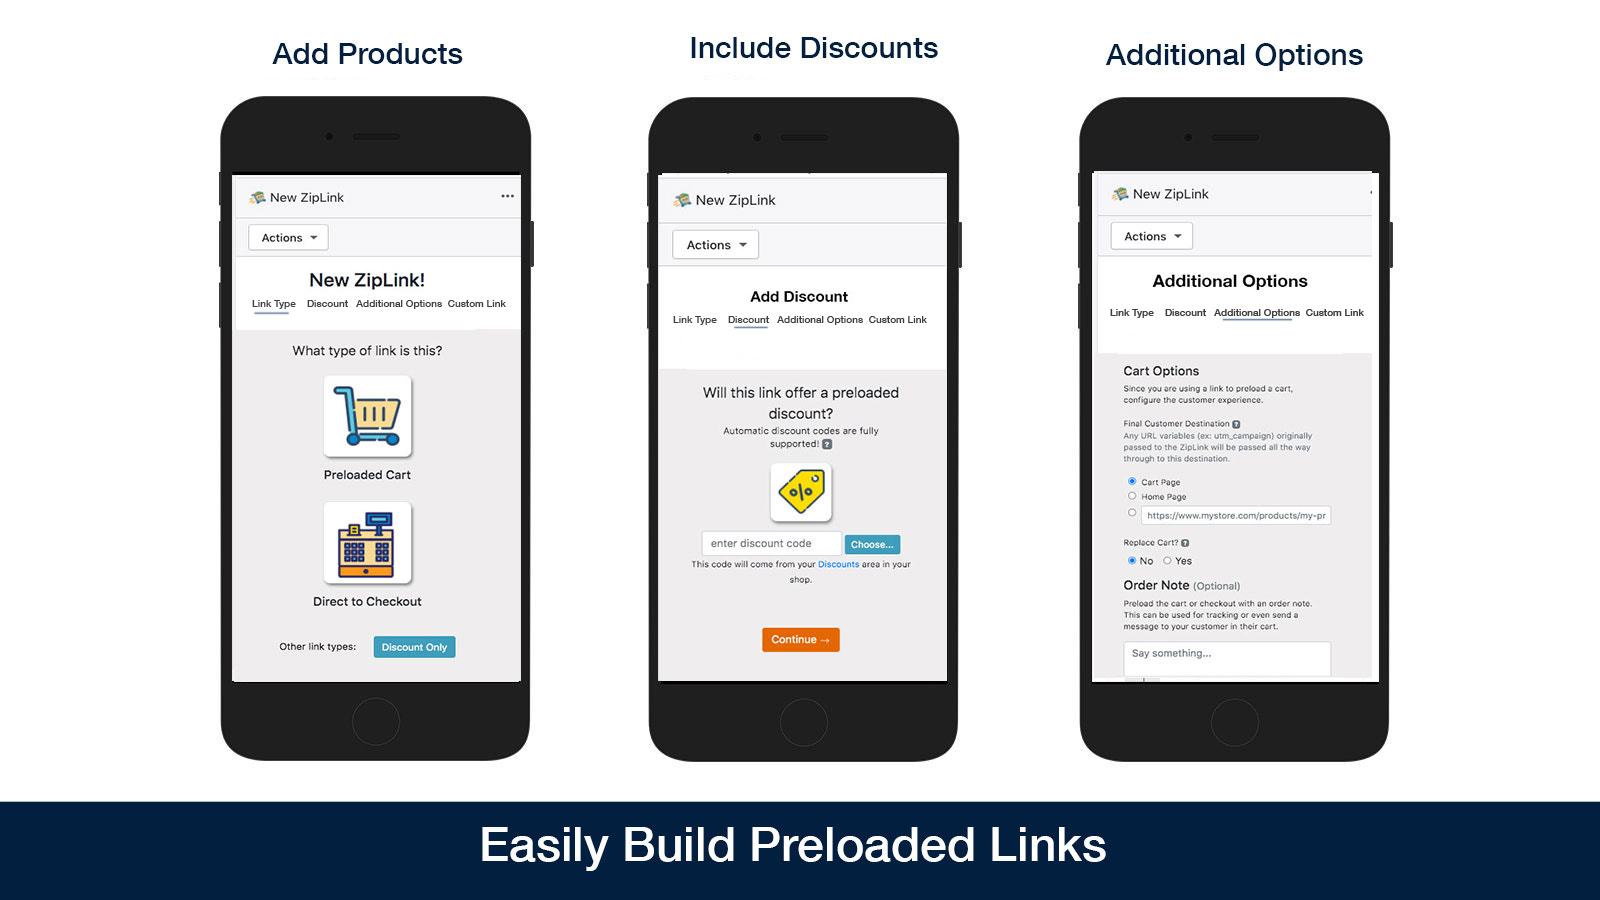 build permalinks quickly and easily direct to checkout